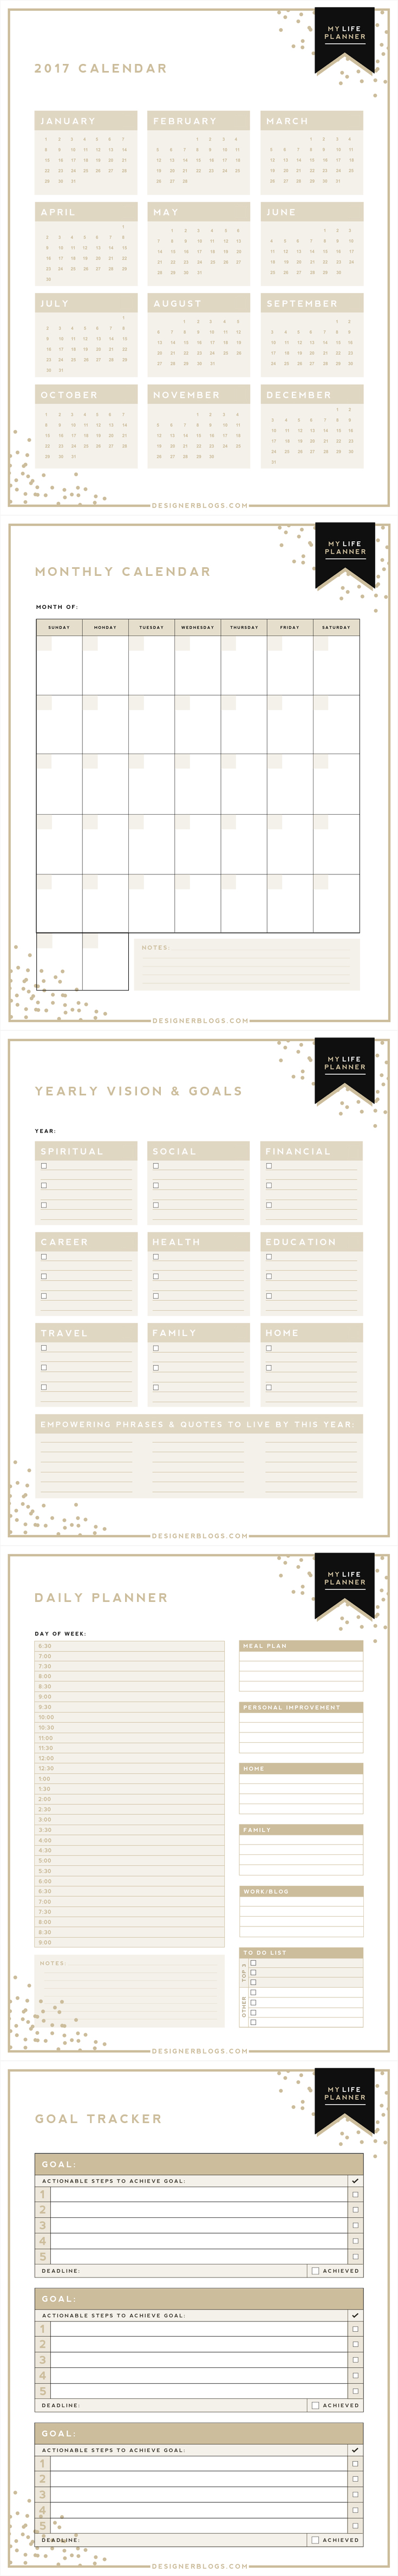 Calendar Year Goals Record : Calendar monthly yearly vision goals